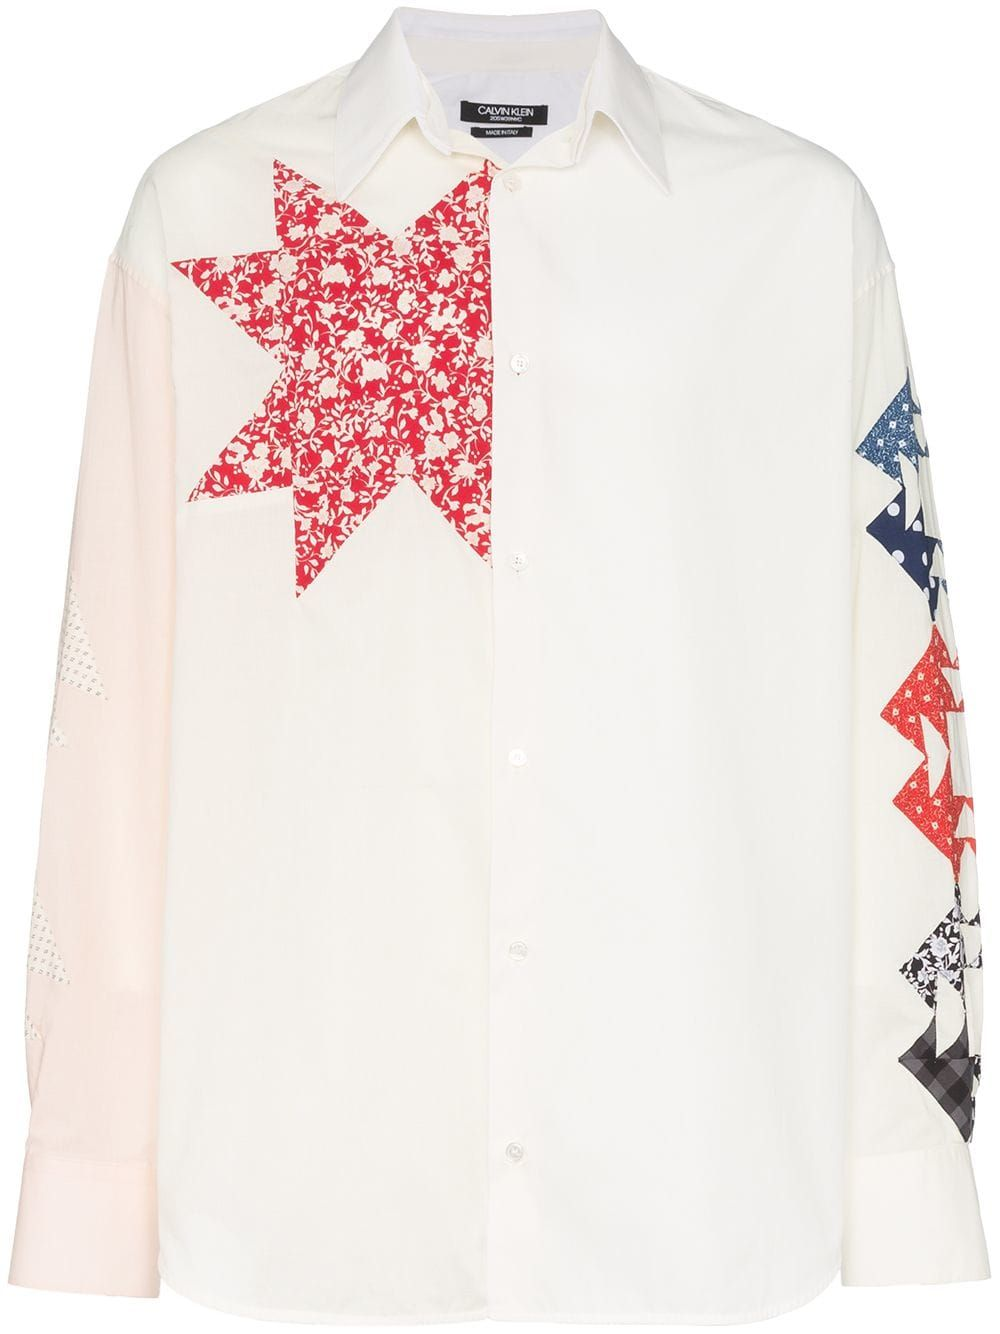 Calvin Klein 205W39nyc triangle embroidered cotton shirt